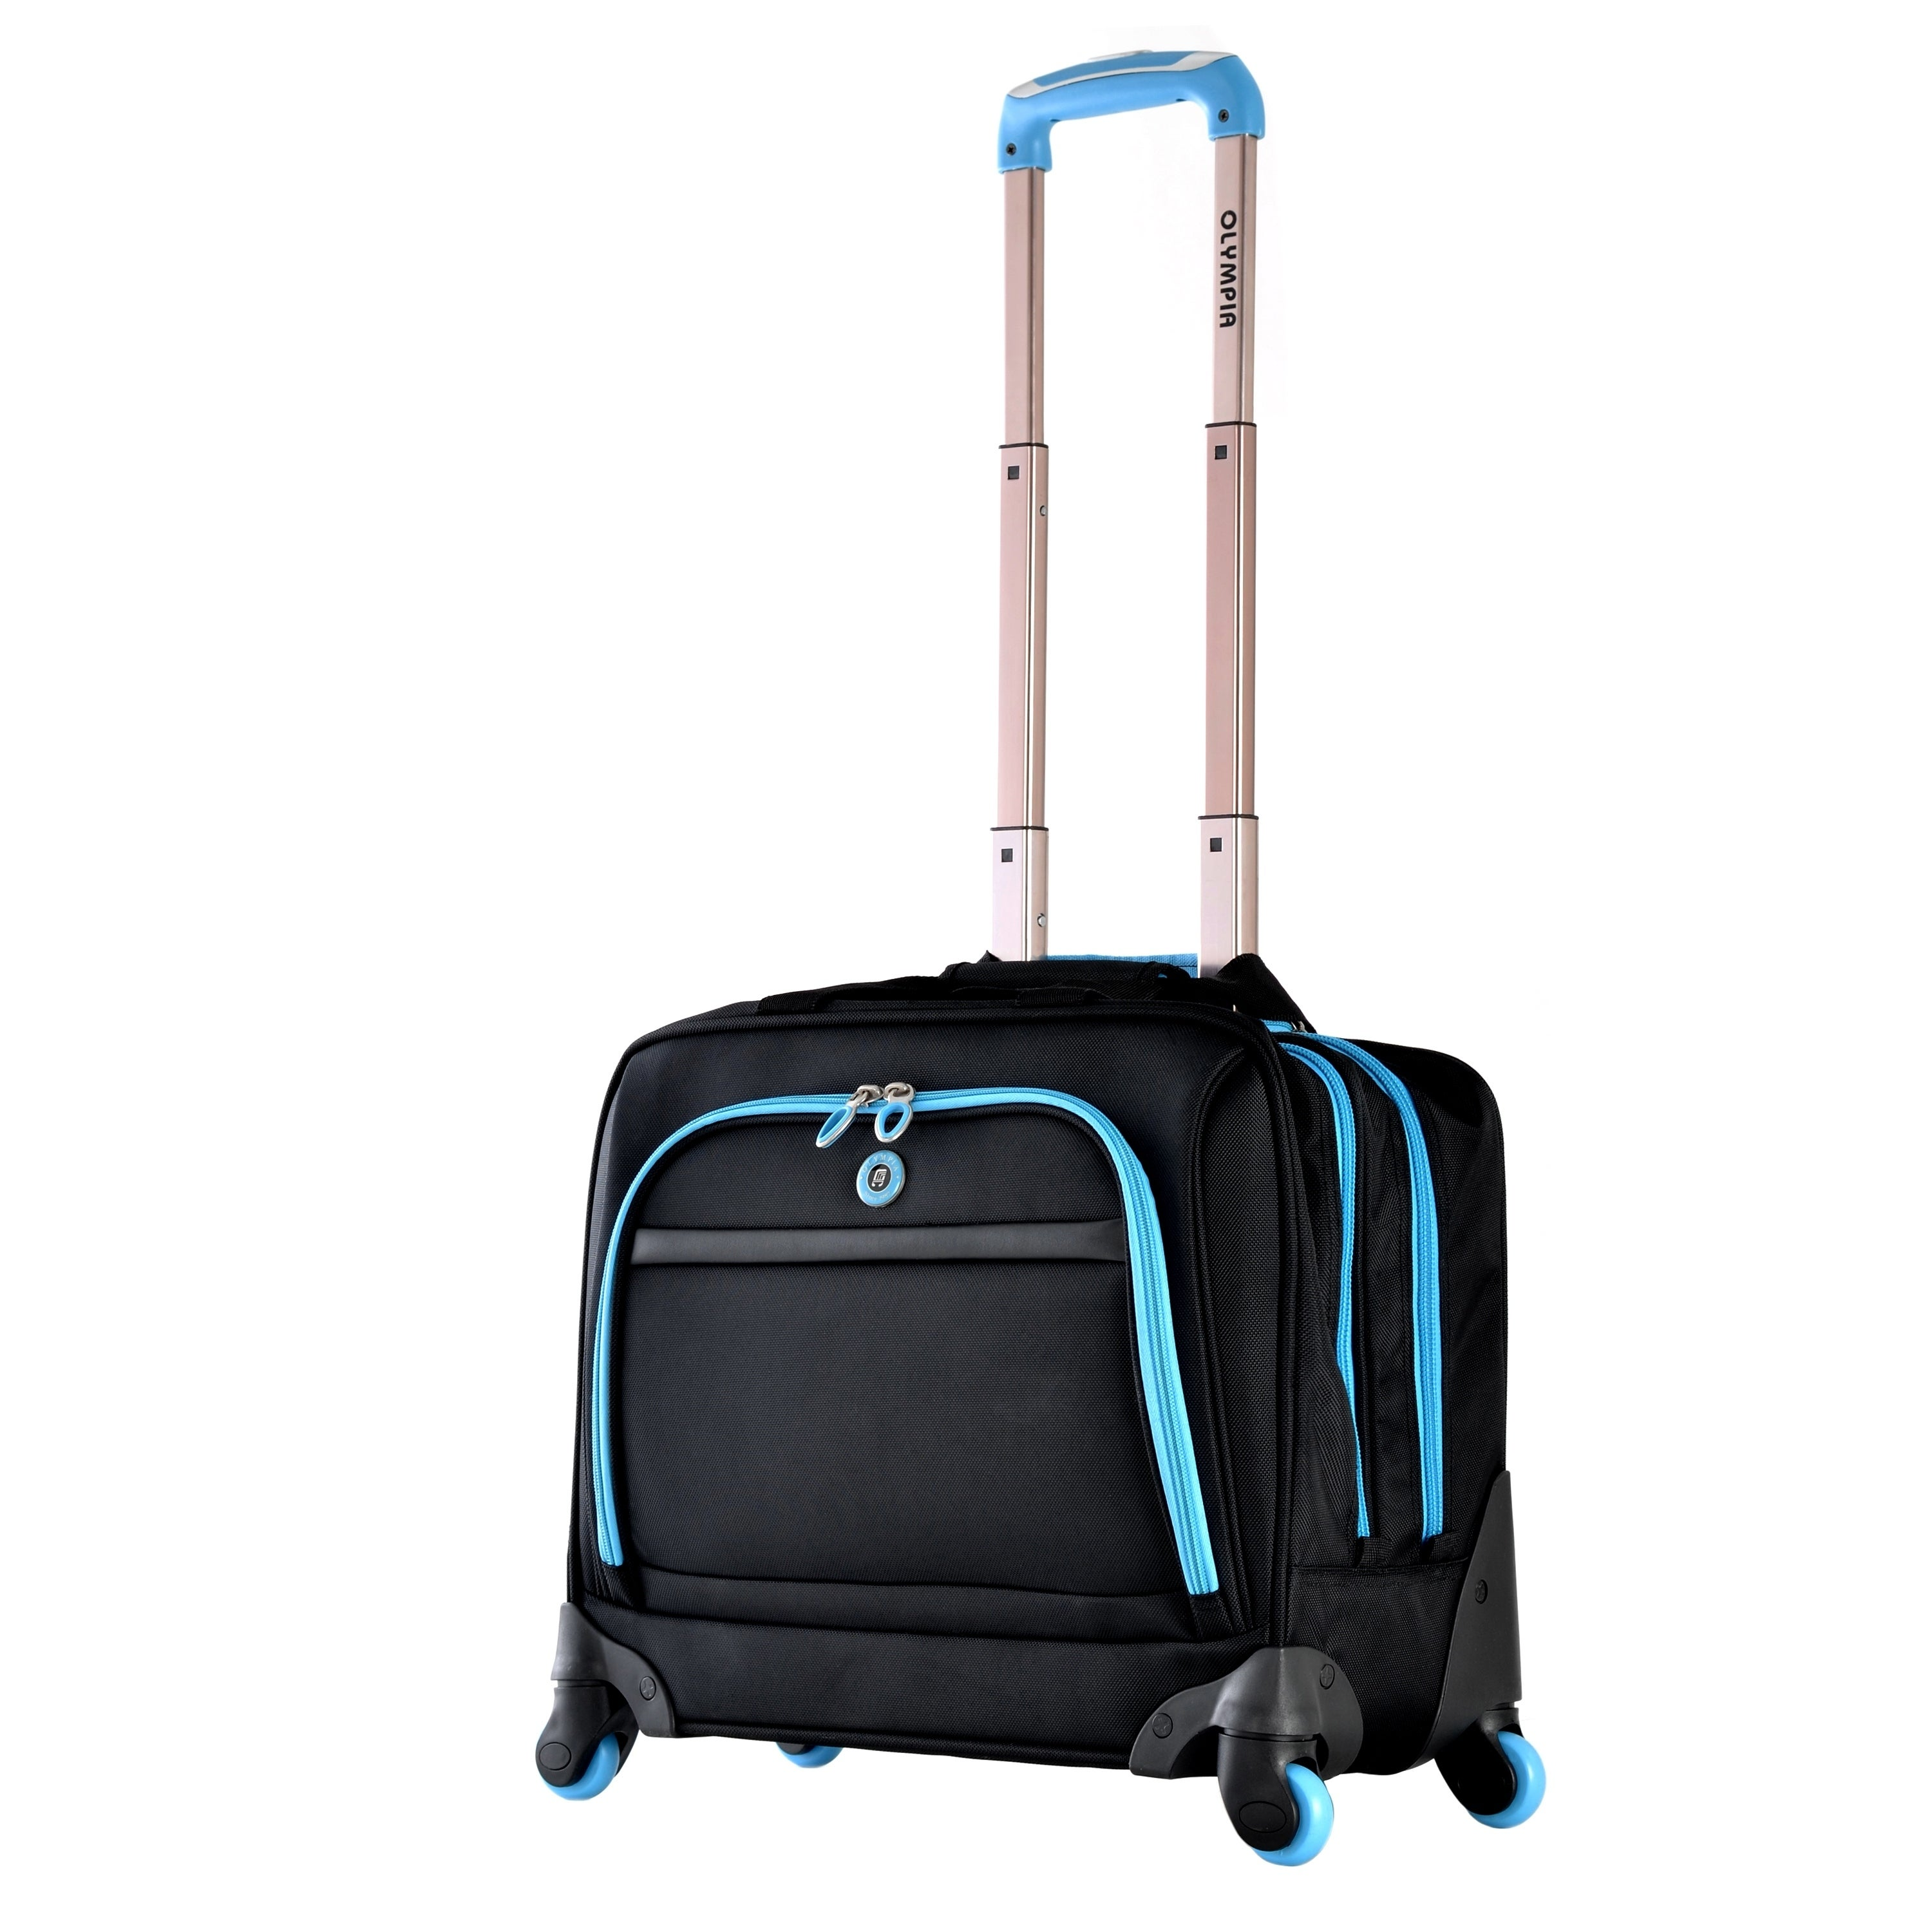 Olympia Hover Carry On 360 Spinner Wheels Tote Bag Multiple Colorways